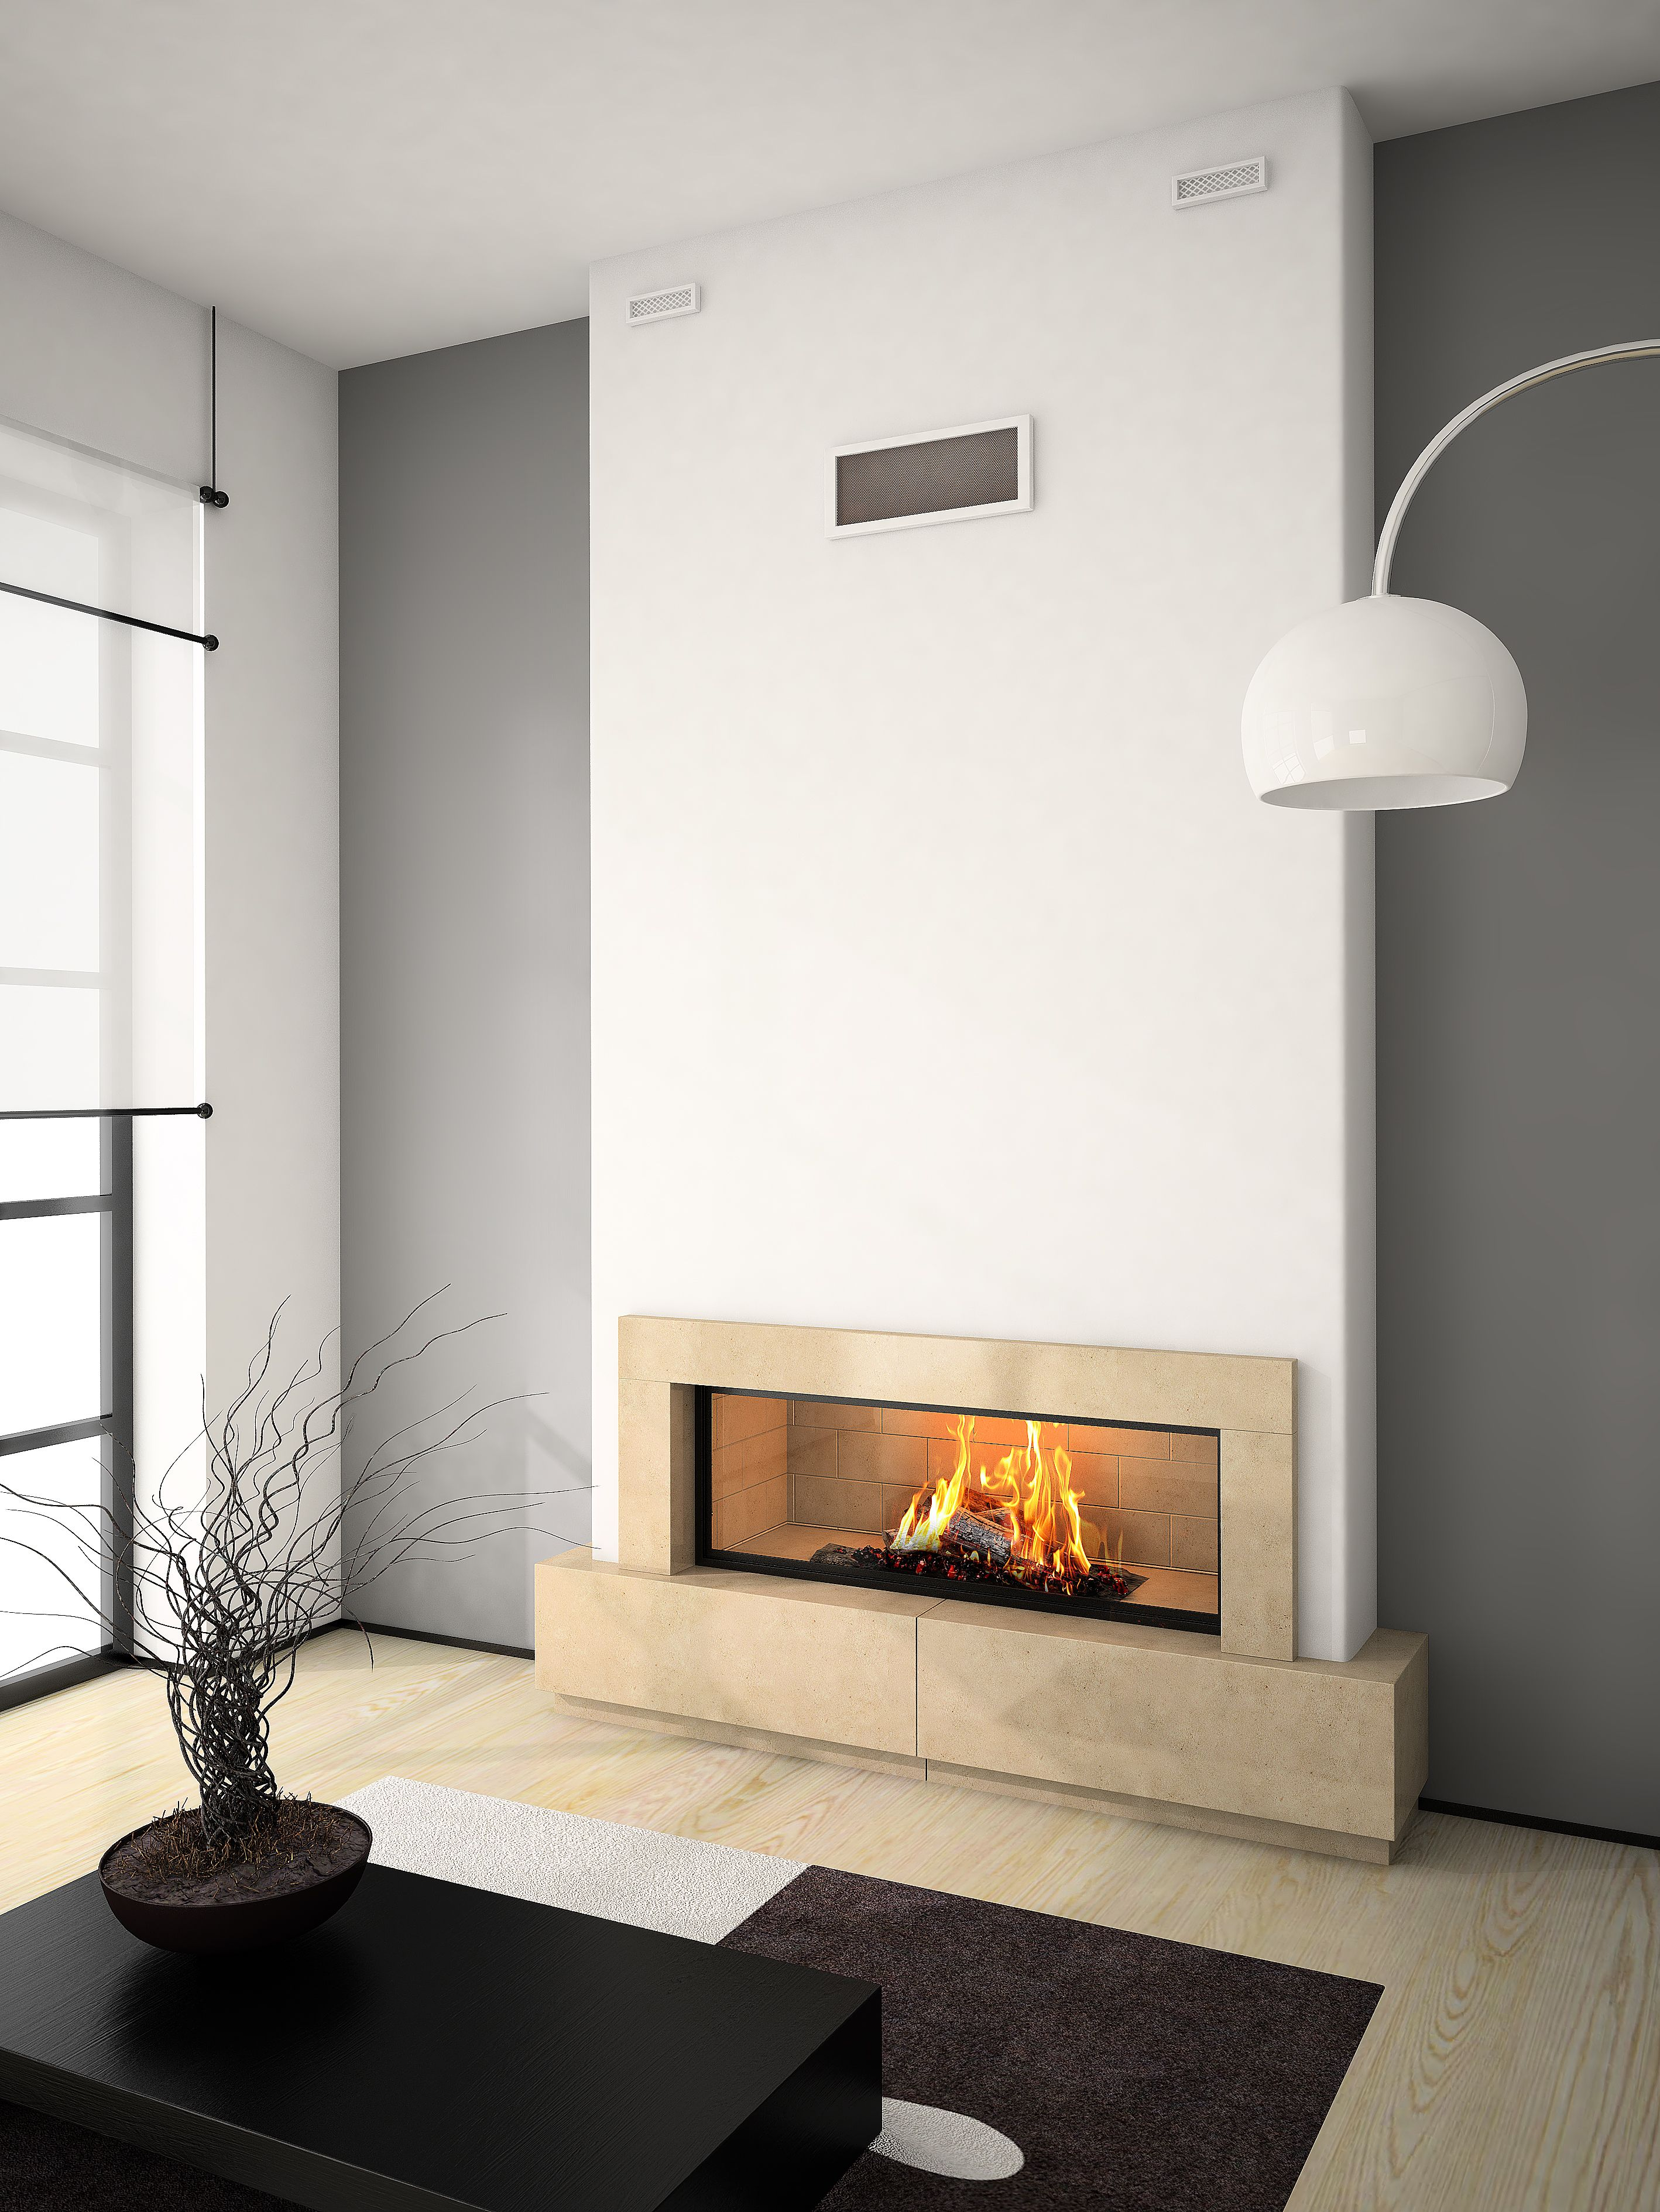 AXIS H1600 Contemporary inbuilt fireplace The handmade excellence of ...